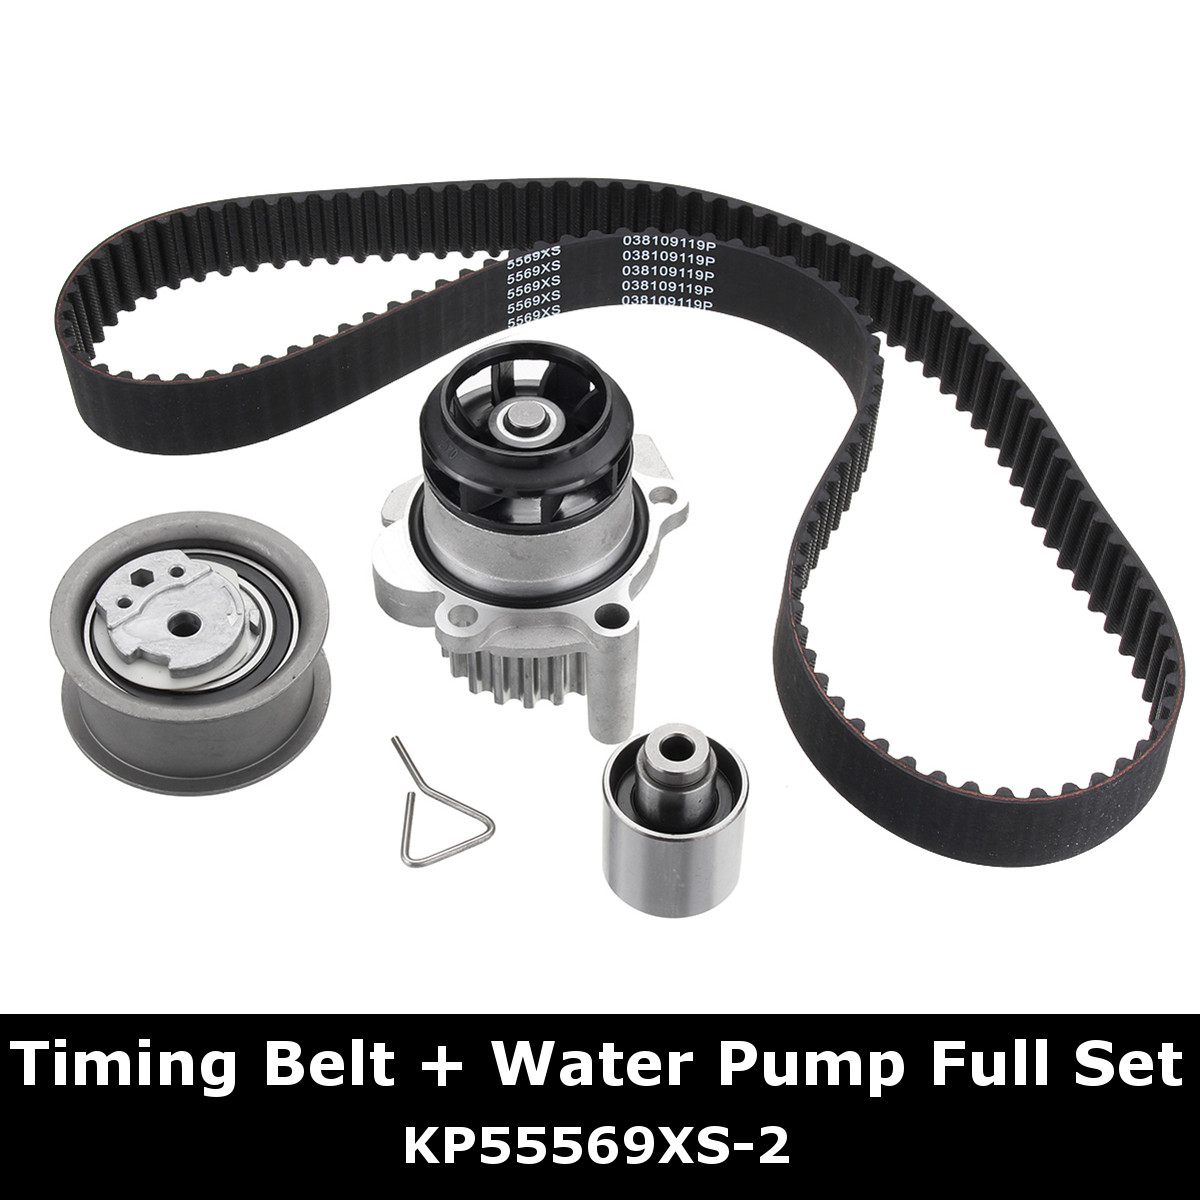 Timing Belt Kit Water Pump Set for AUDI A2 - A3 8P for VW Golf Passat SEAT 1.4 1.9 TDI for SKODA 910 029 amb atw bkf bnu awt anb cylinder head for audi a3 a4 a6 tt s3 for skoda octavia for seat toledo for vw passat golf 1 8t